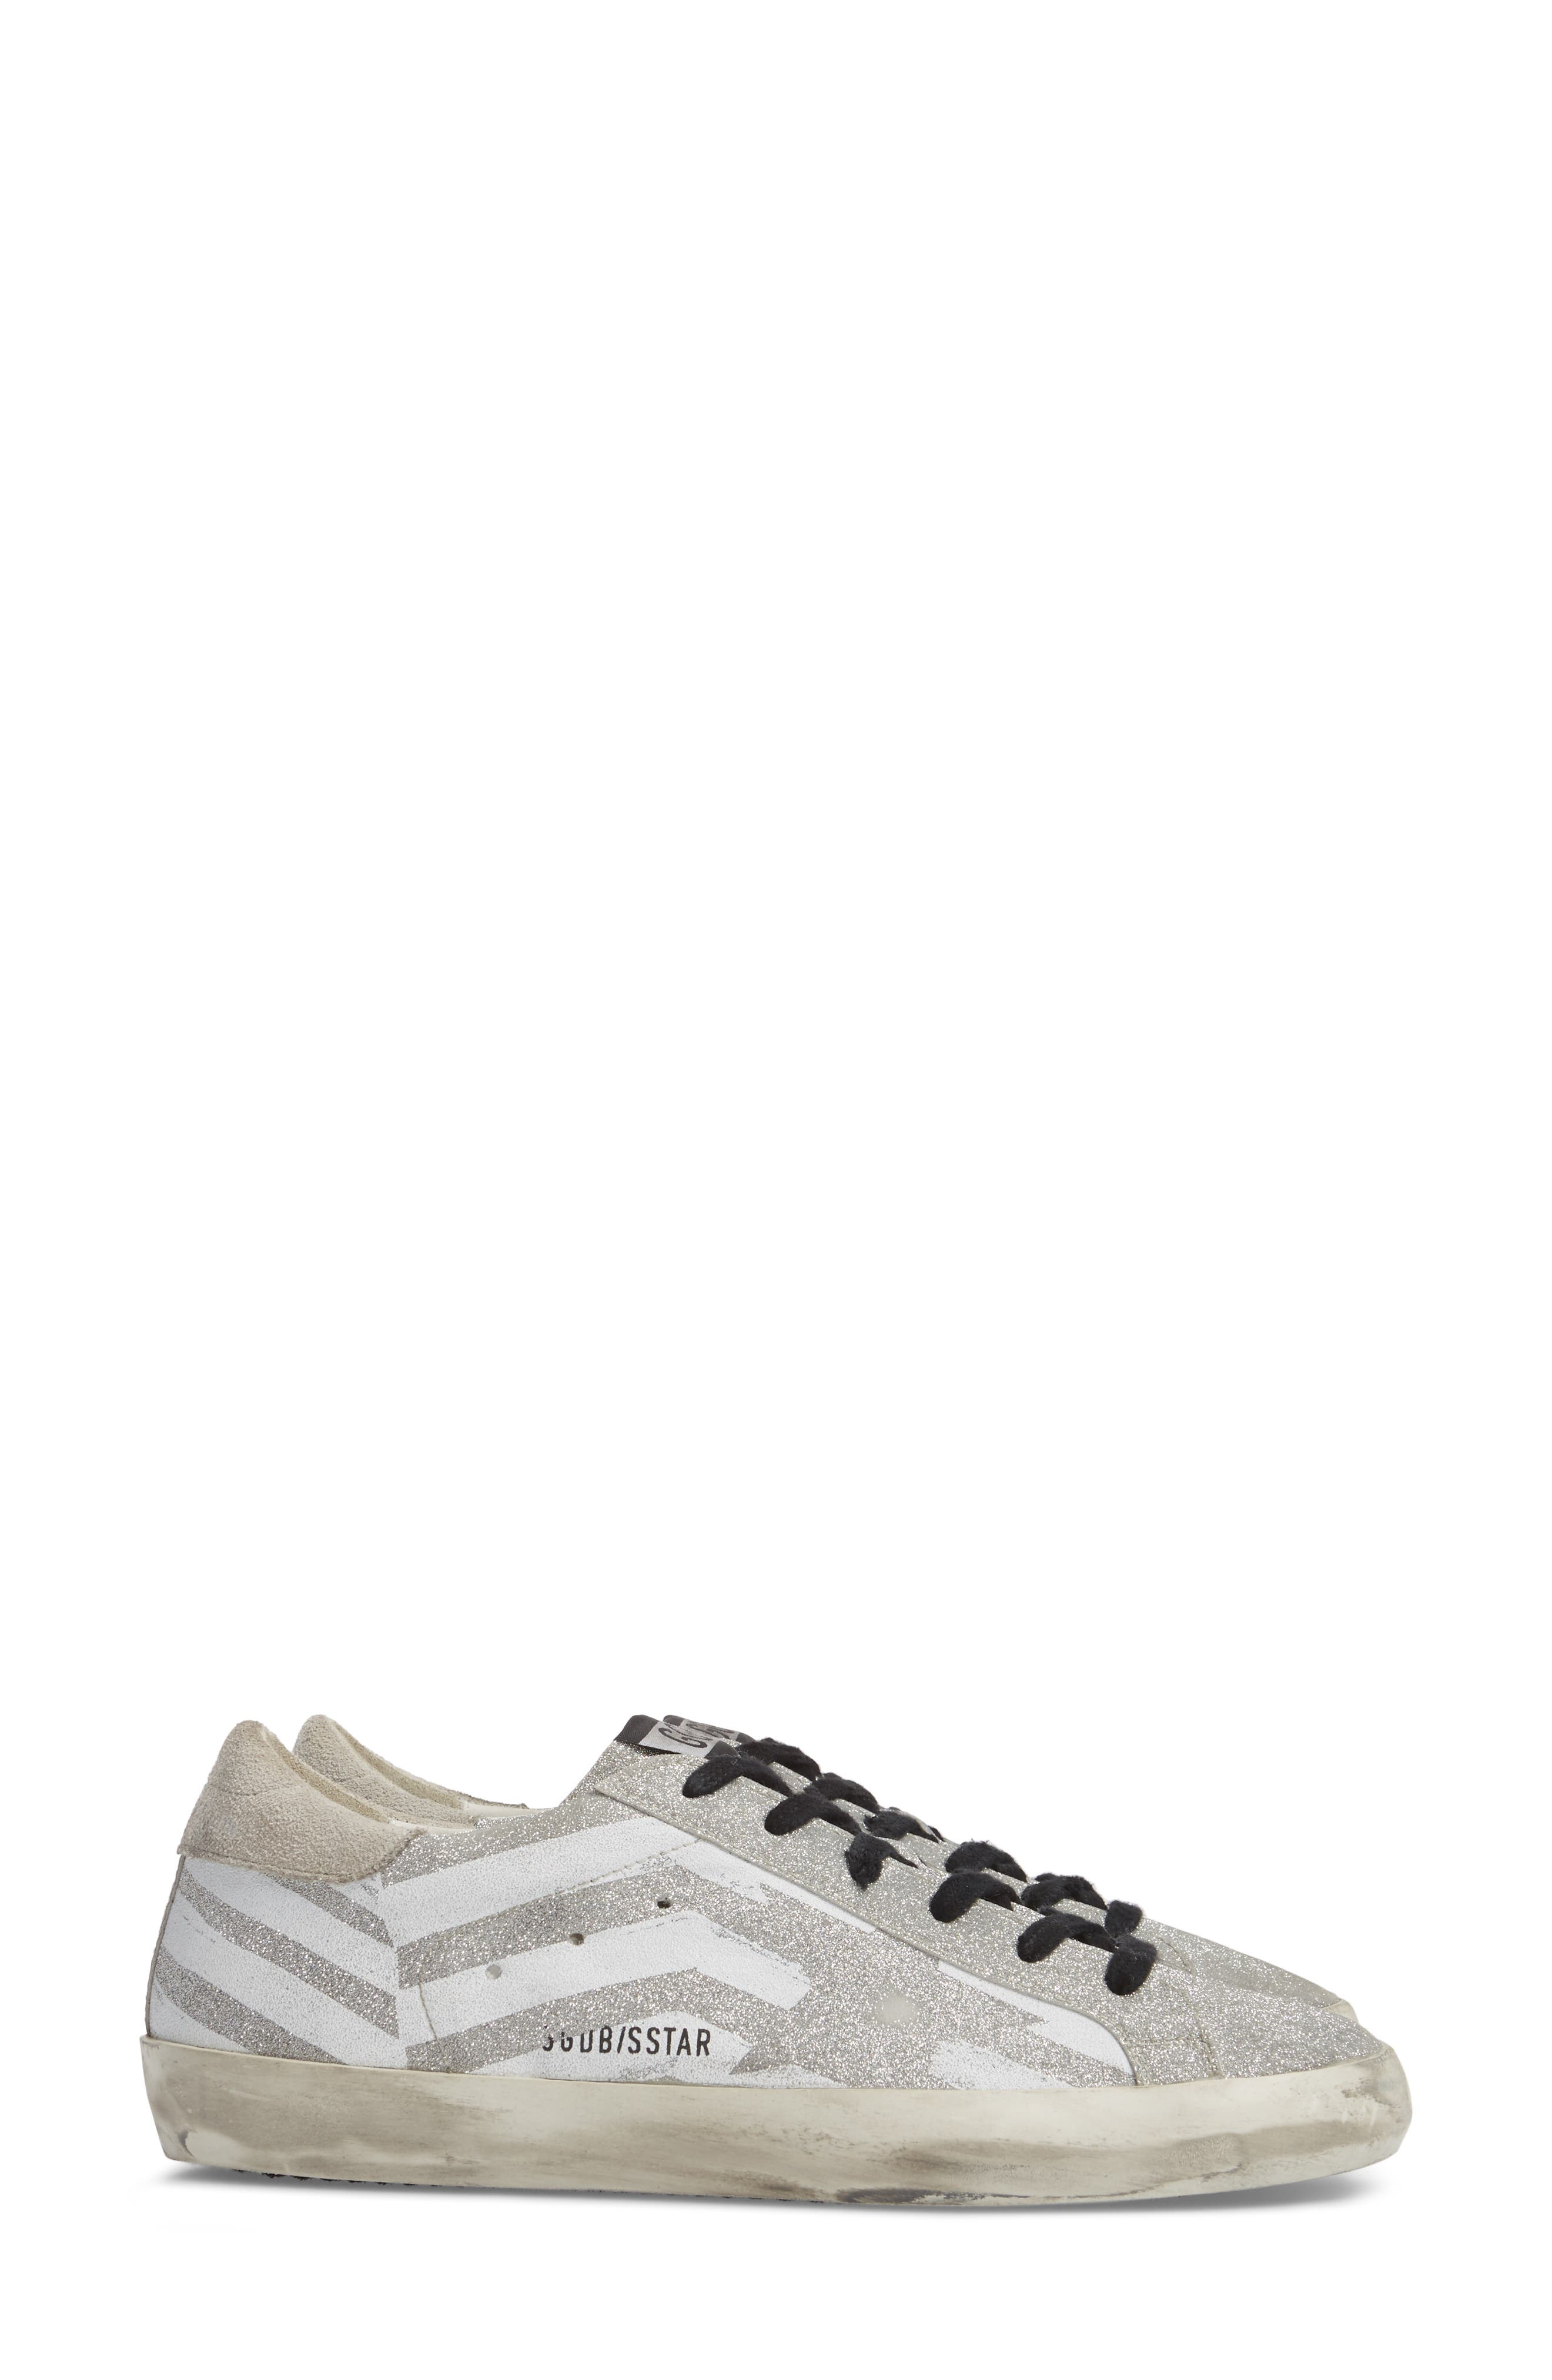 Superstar Low Top Sneaker,                             Alternate thumbnail 3, color,                             Grey/ White